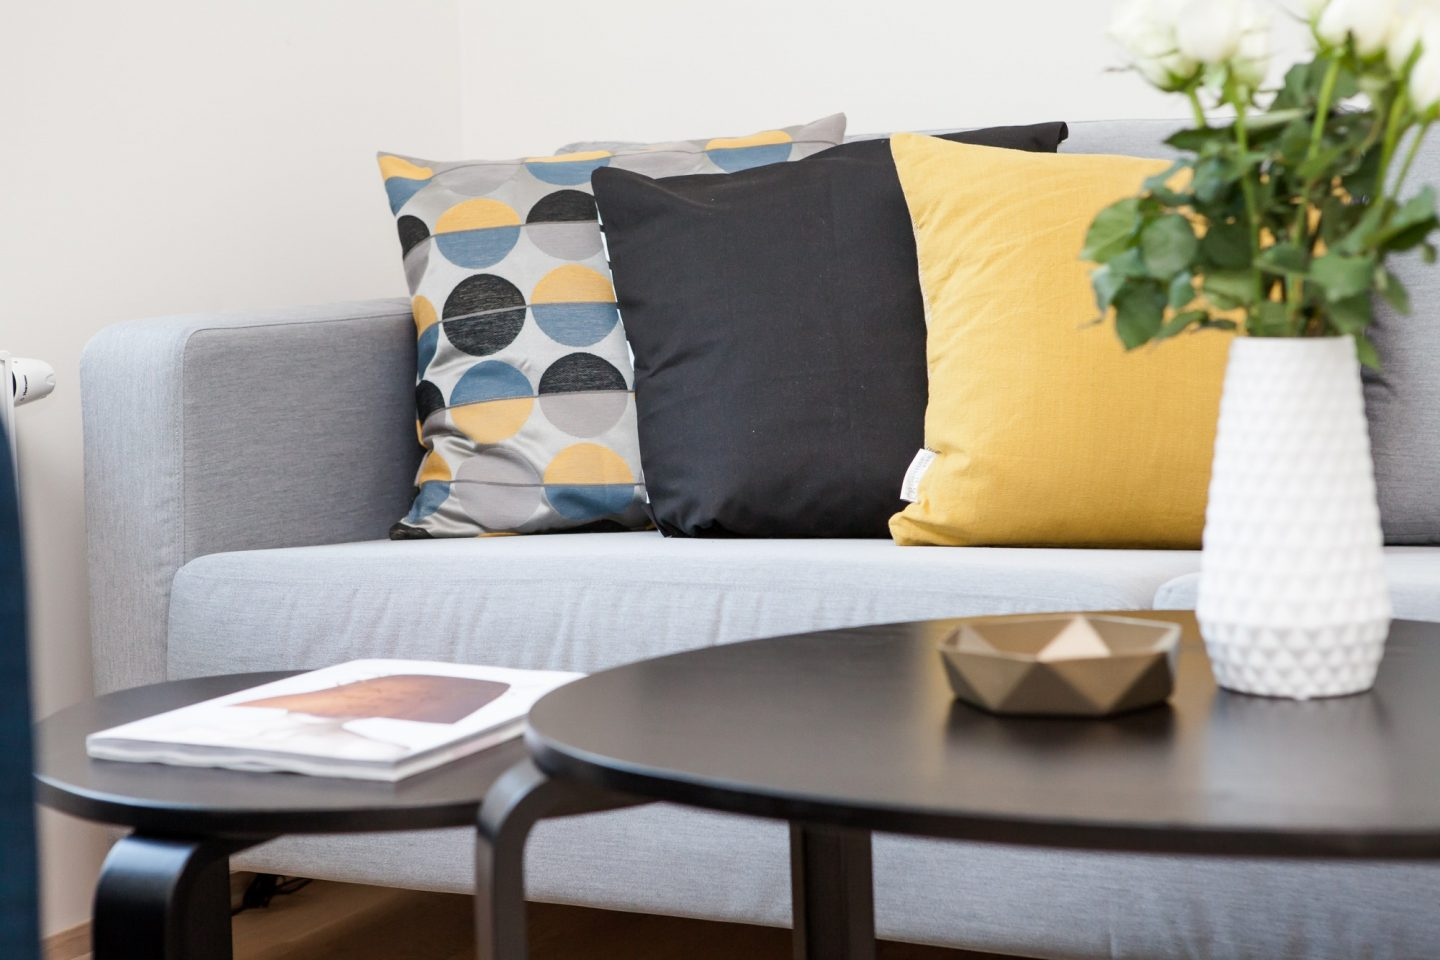 Cushions and furnishings to brighten up home